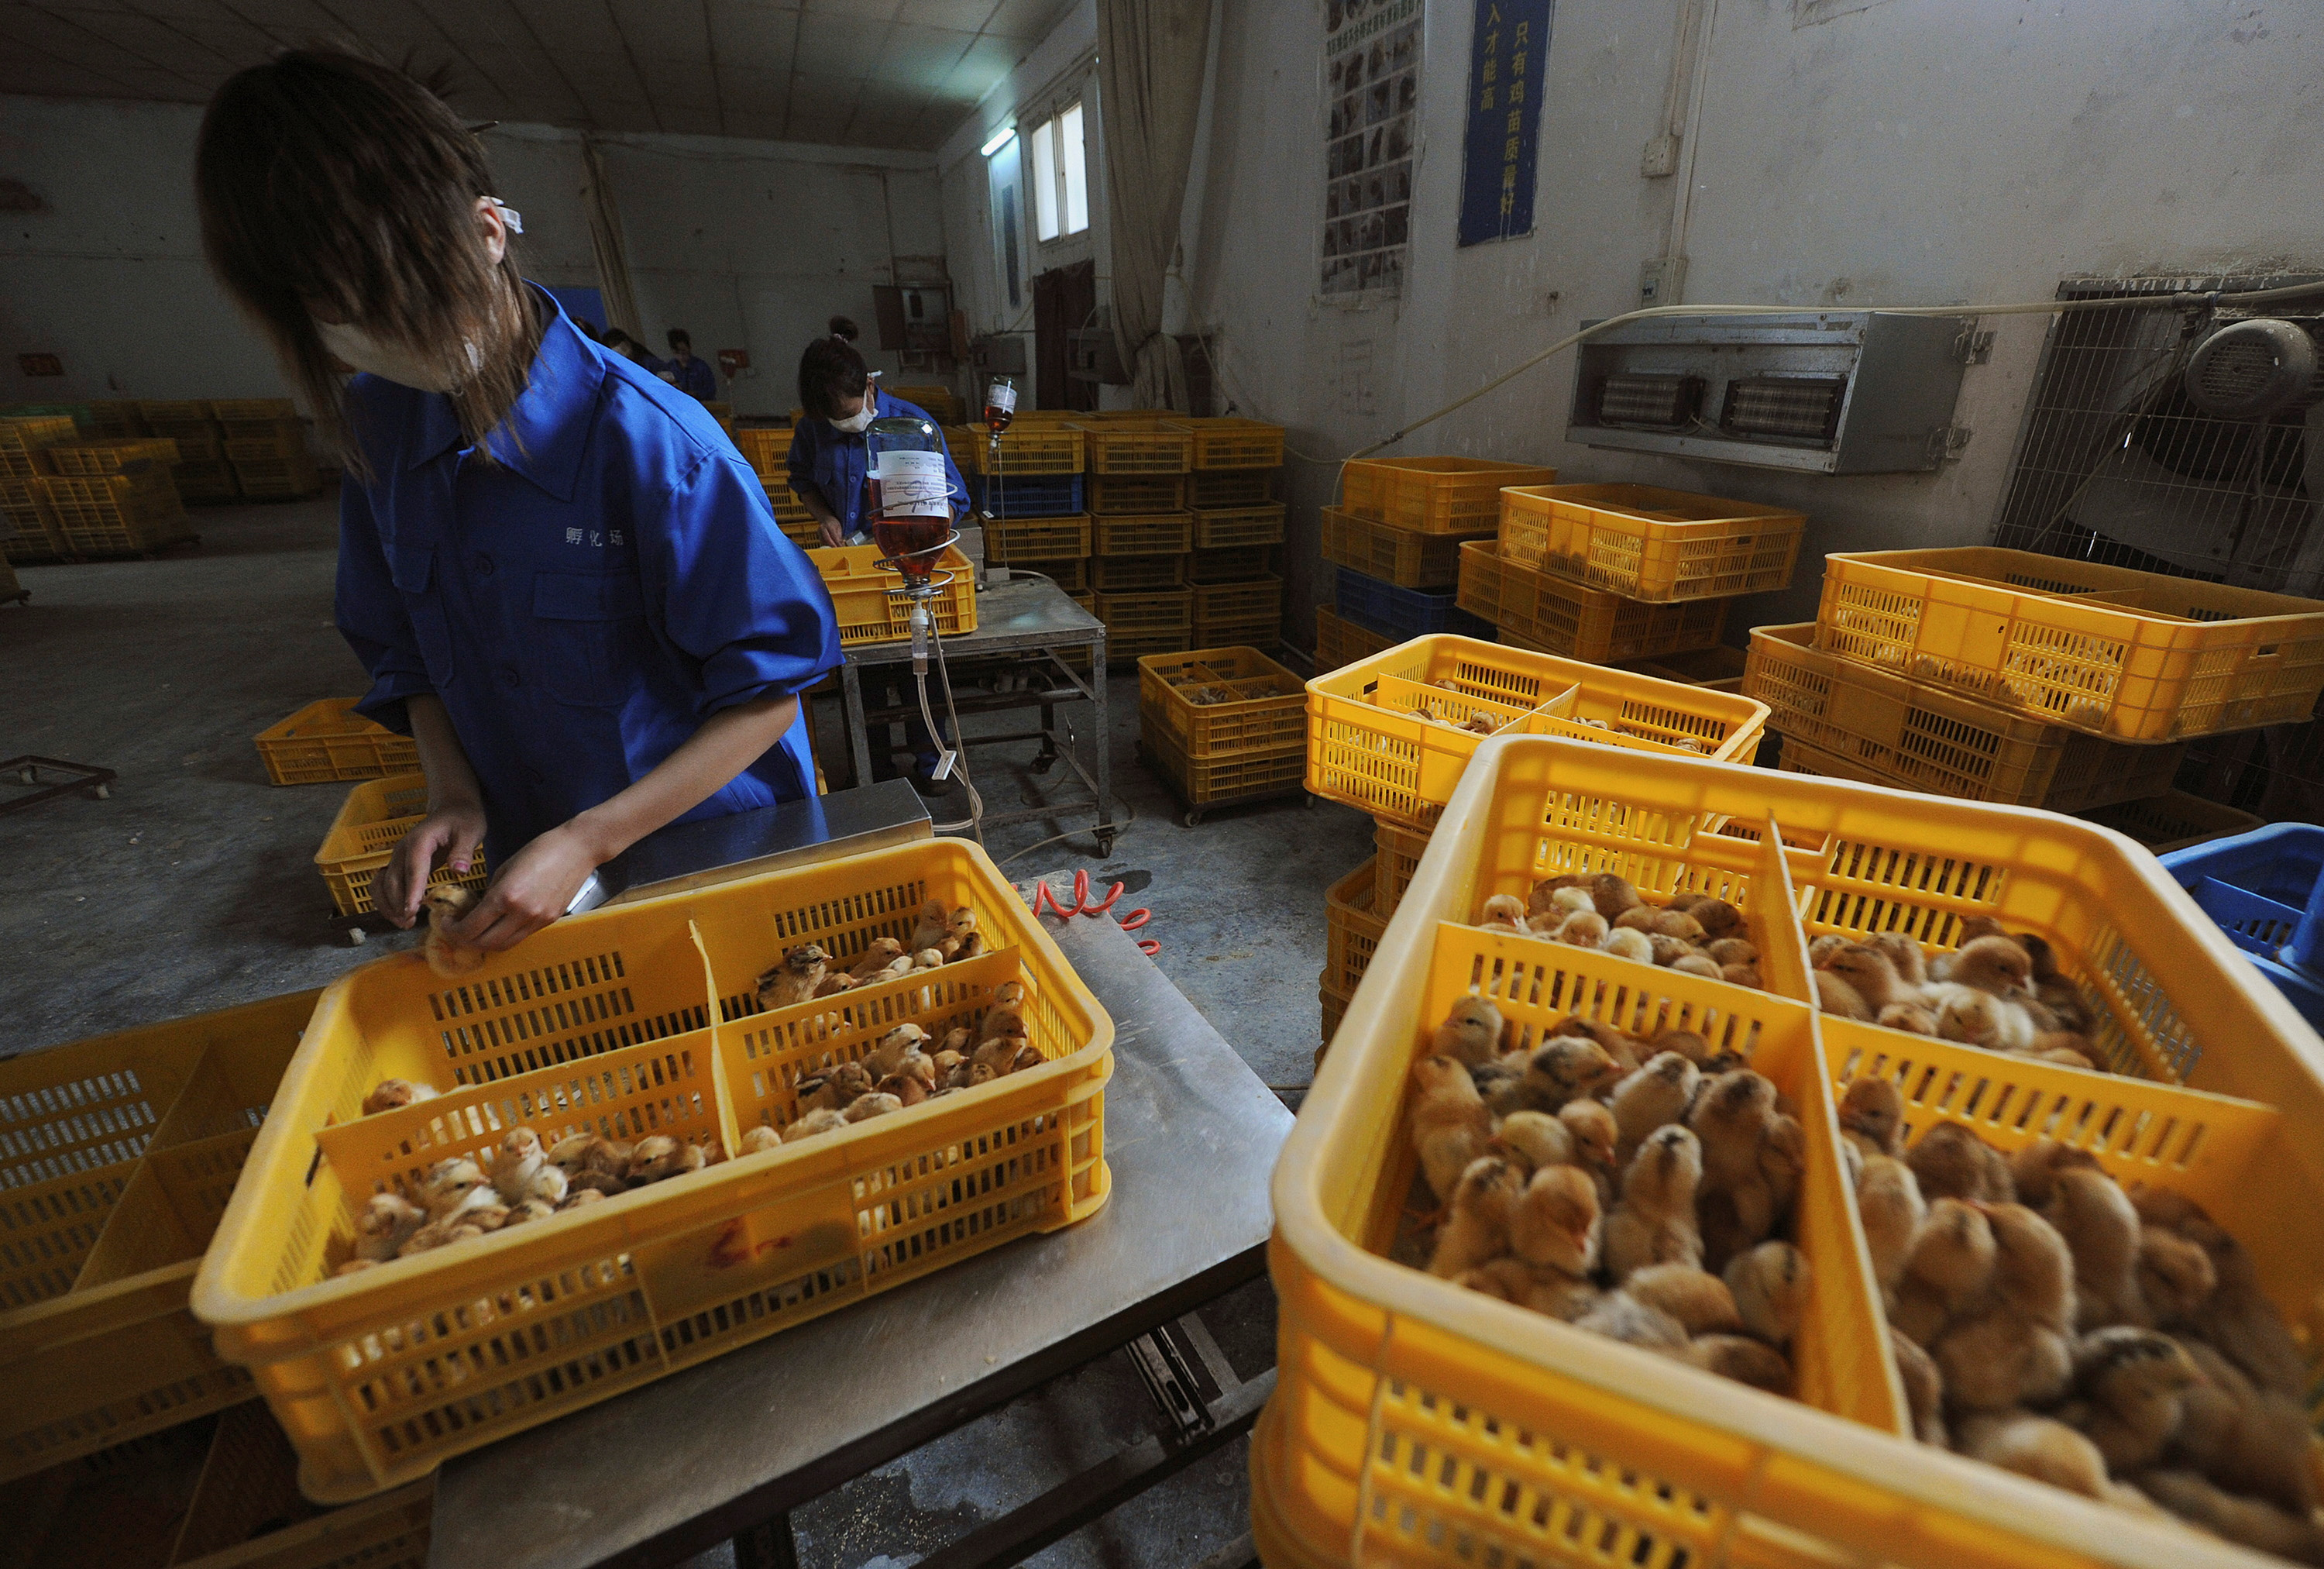 Workers vaccinate chicks with the H9 bird flu vaccine at a farm in Changfeng county, Anhui province, April 14, 2013.  REUTERS/Stringer/File Photo